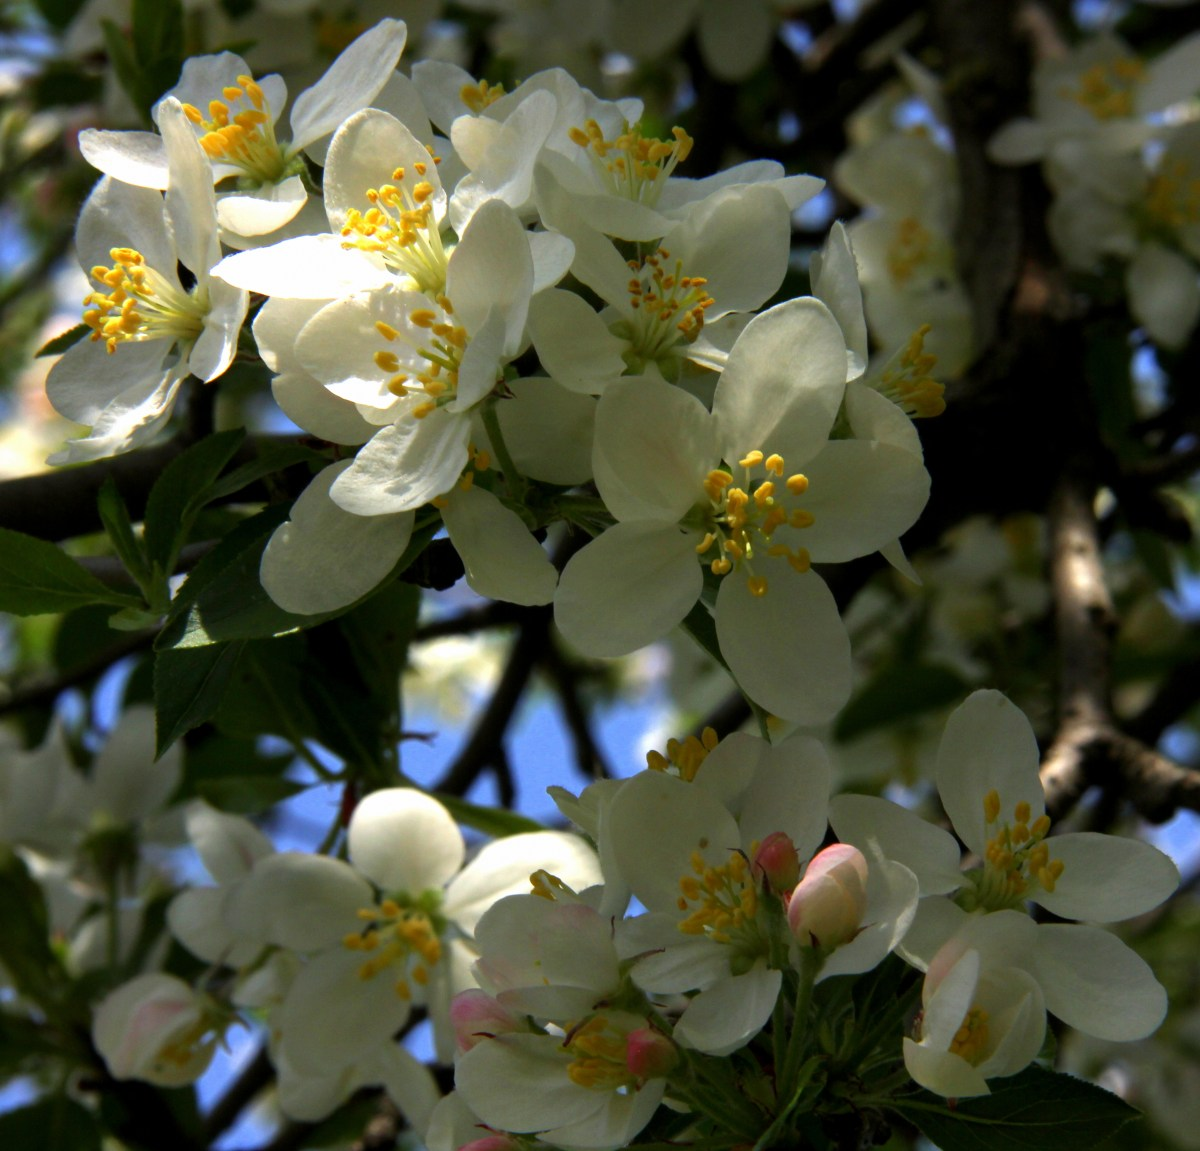 apple blossoms bloom in april in kashmir